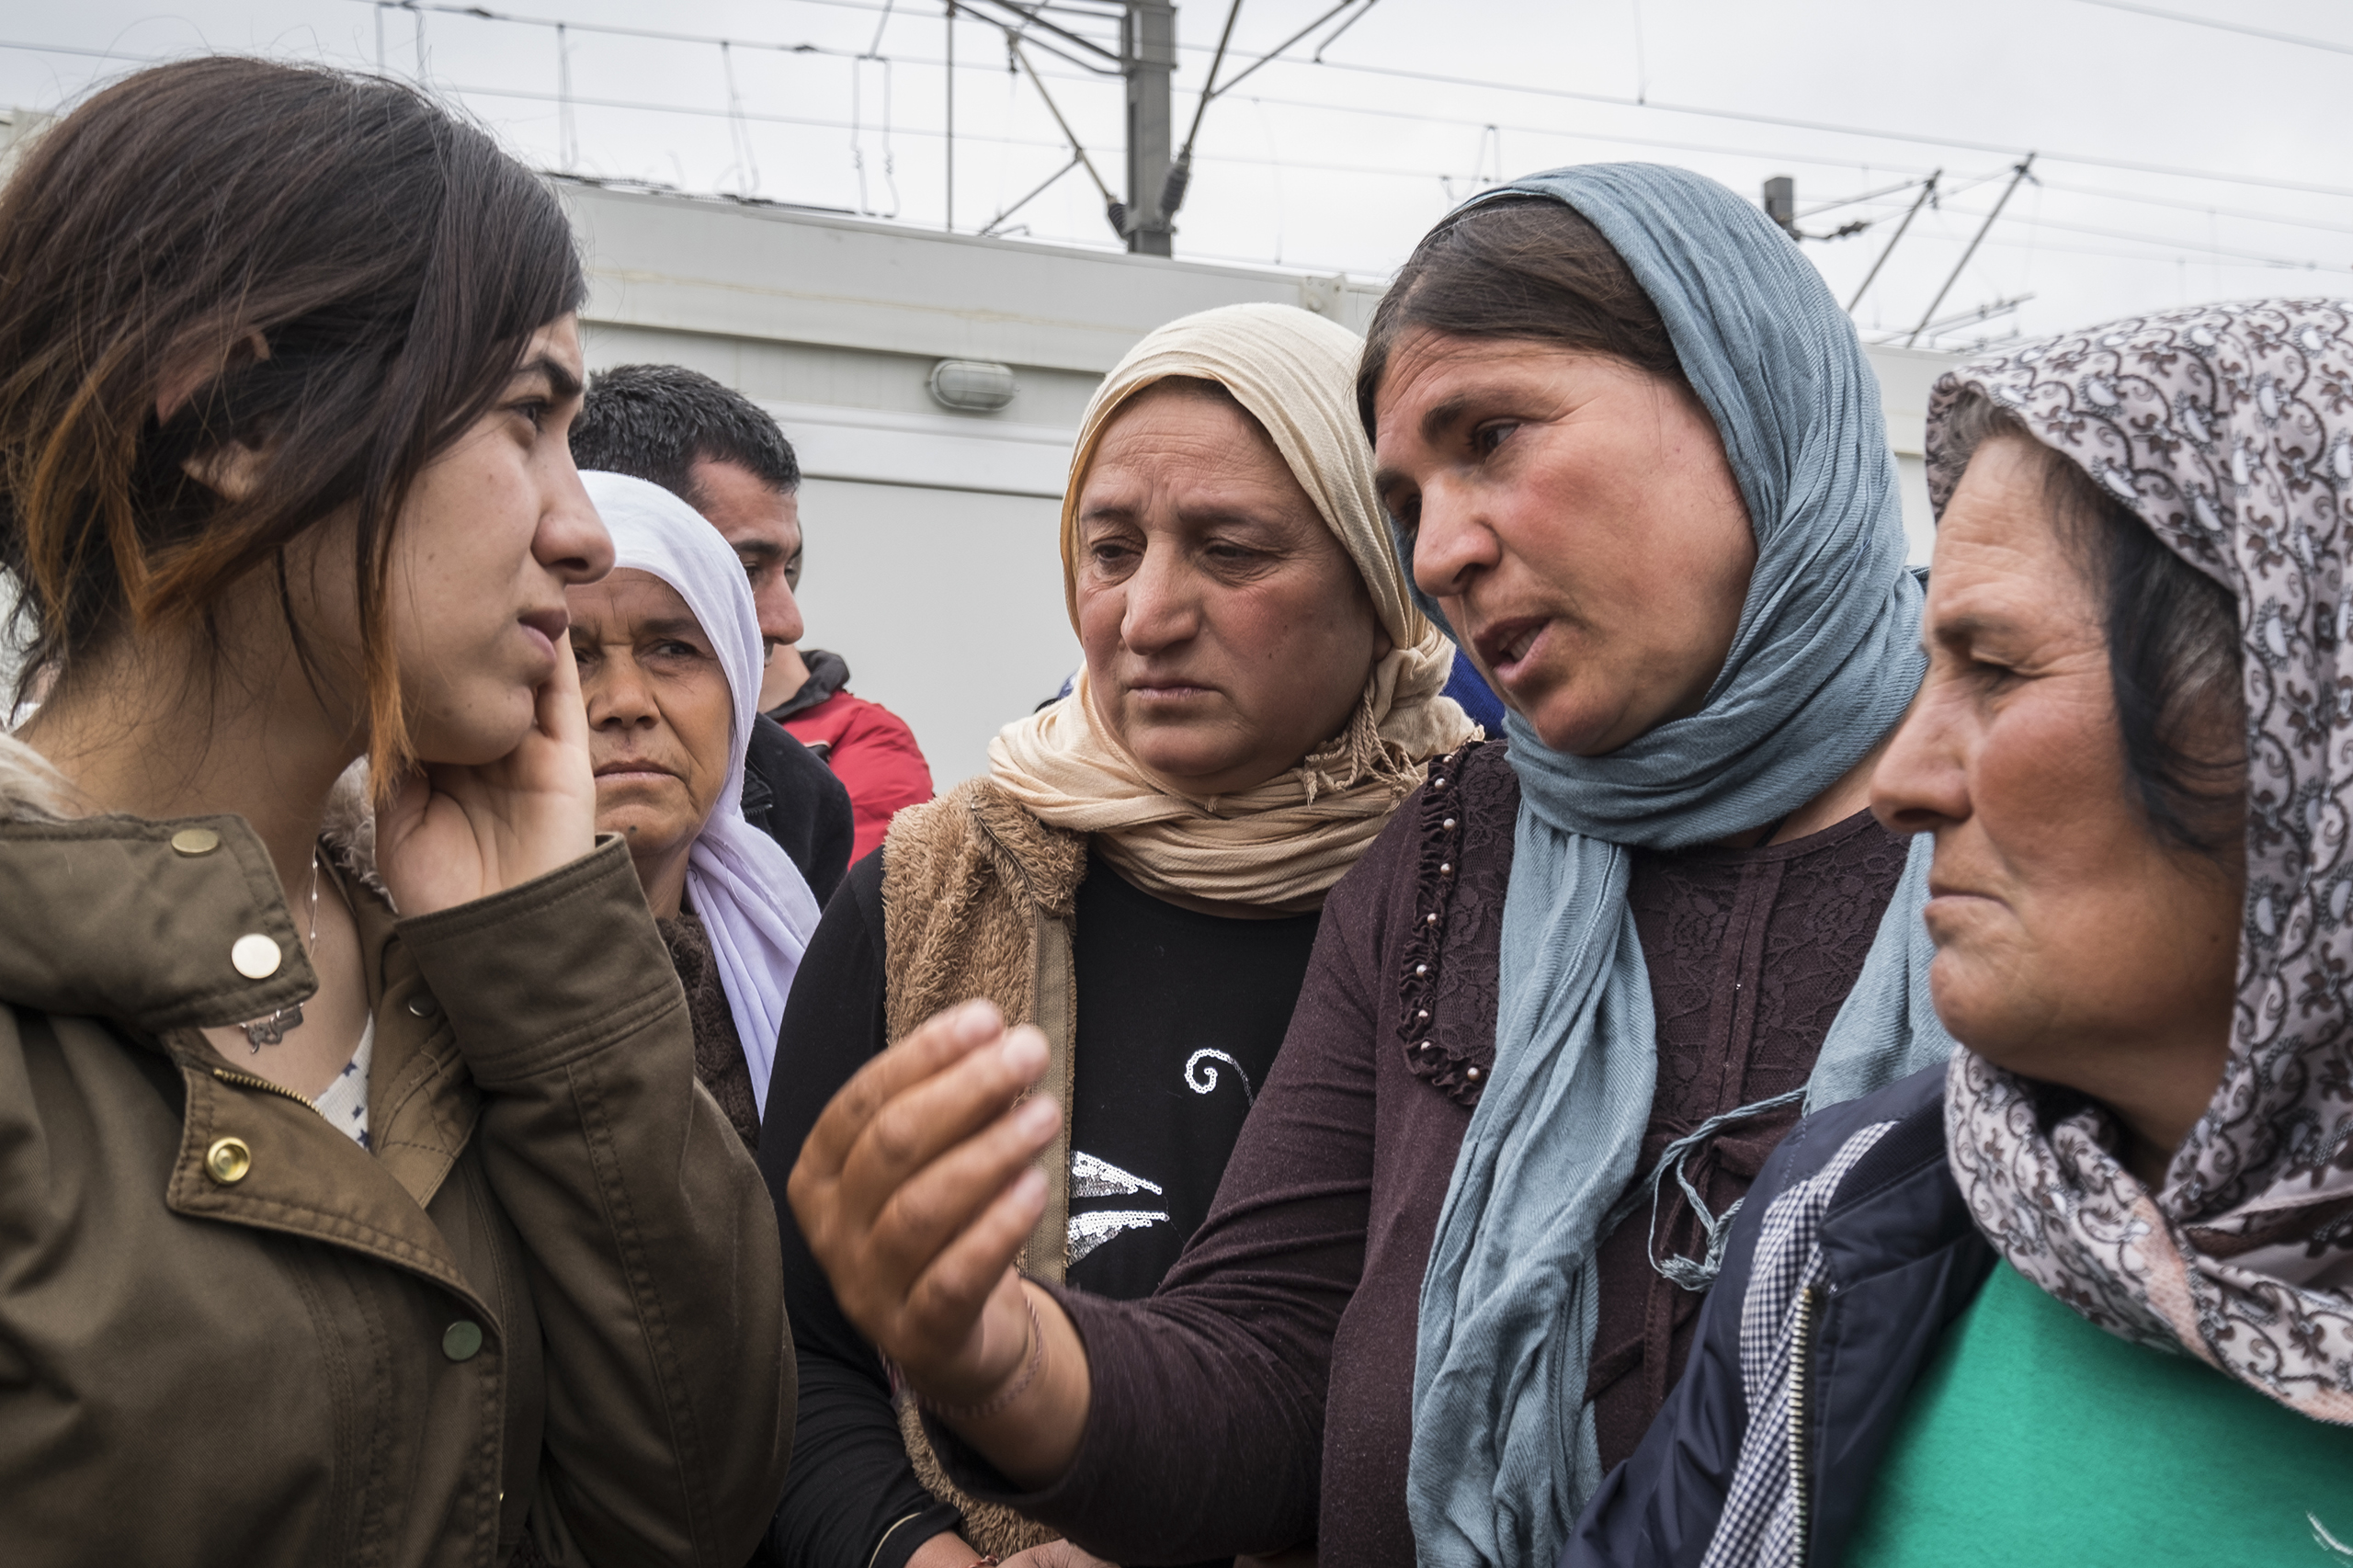 Nadia Murad Basee Taha talks to some of the Yazidi women that are living at the refugee camp near Idomeni, Greece, on April 3, 2016